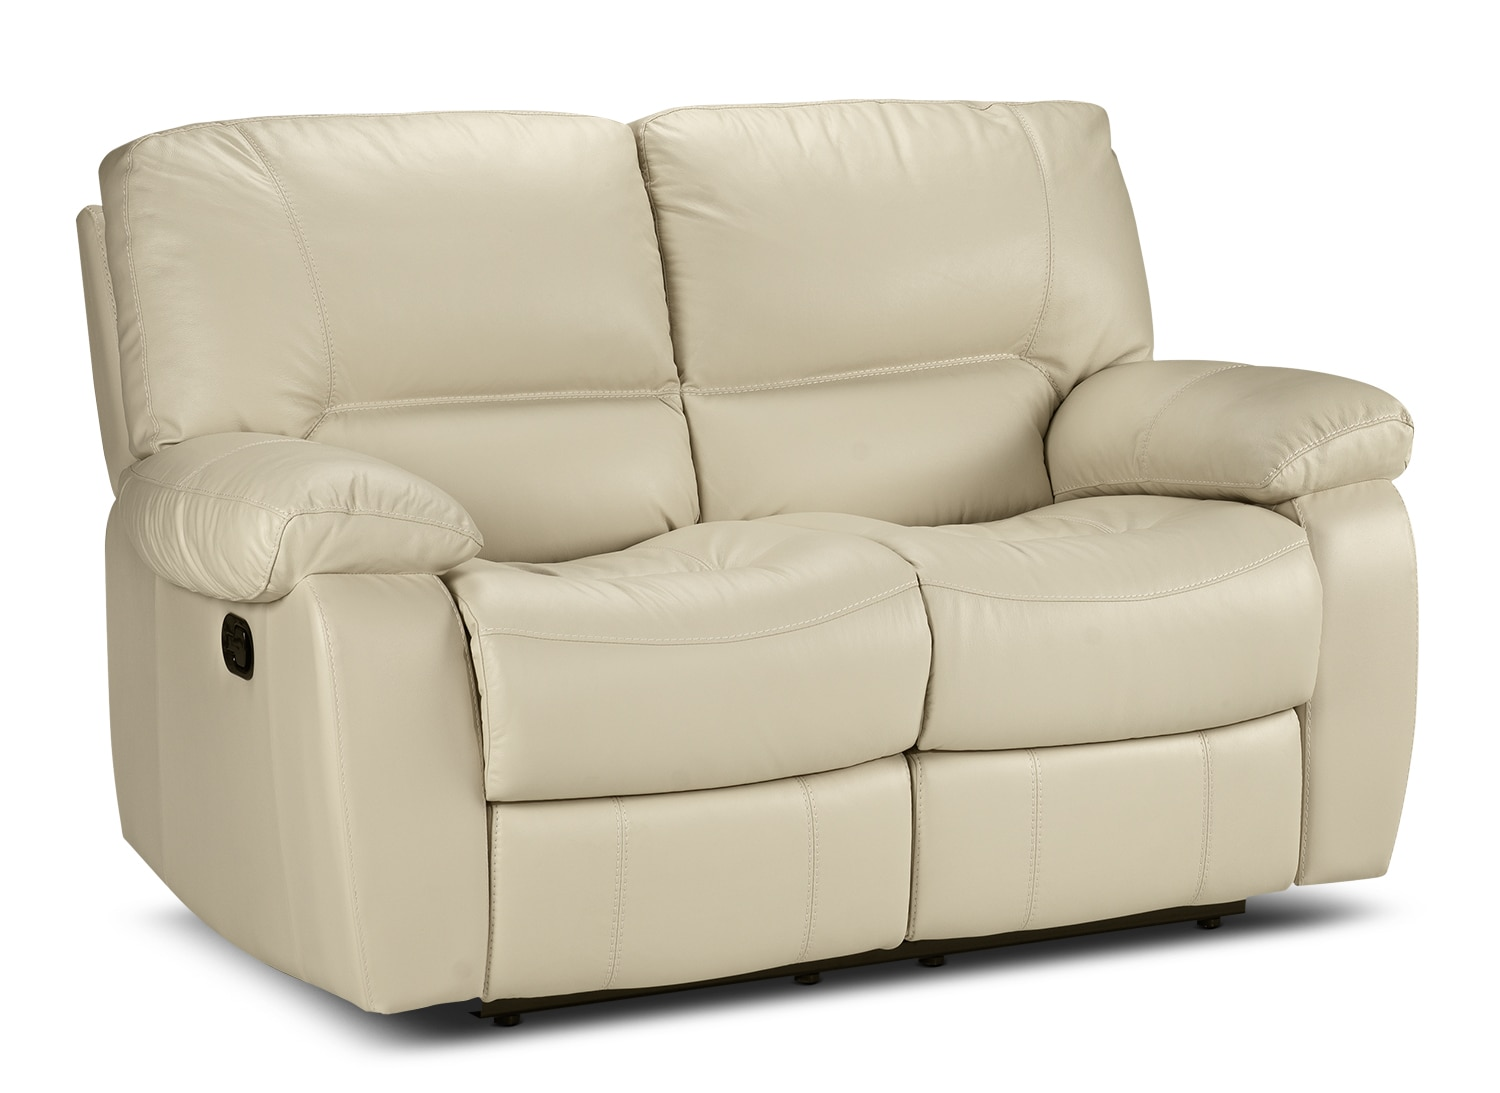 Piermont Reclining Loveseat - Bisque